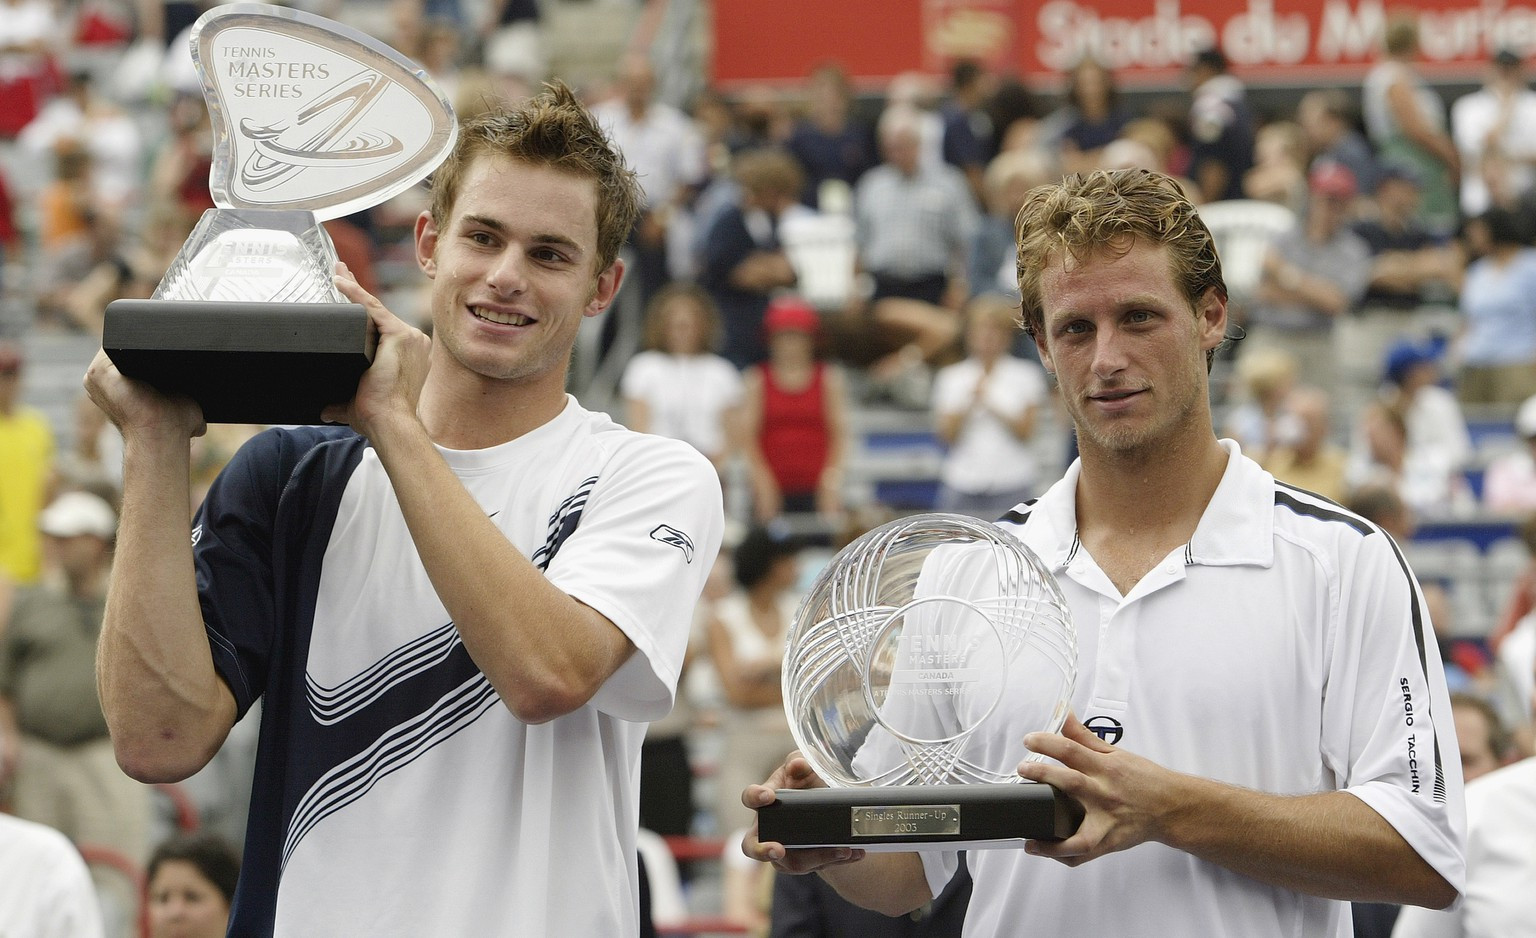 MONTREAL - AUGUST 10:  Andy Roddick of the USA (left) and David Nalbandian pose with their trophy's after the championship match of the Tennis Masters Canada on August 10, 2003 at Maurier Stadium in Montreal, Quebec.  Roddick defeated Nalbandian 6-1, 6-3.  (Photo by Elsa/Getty Images)